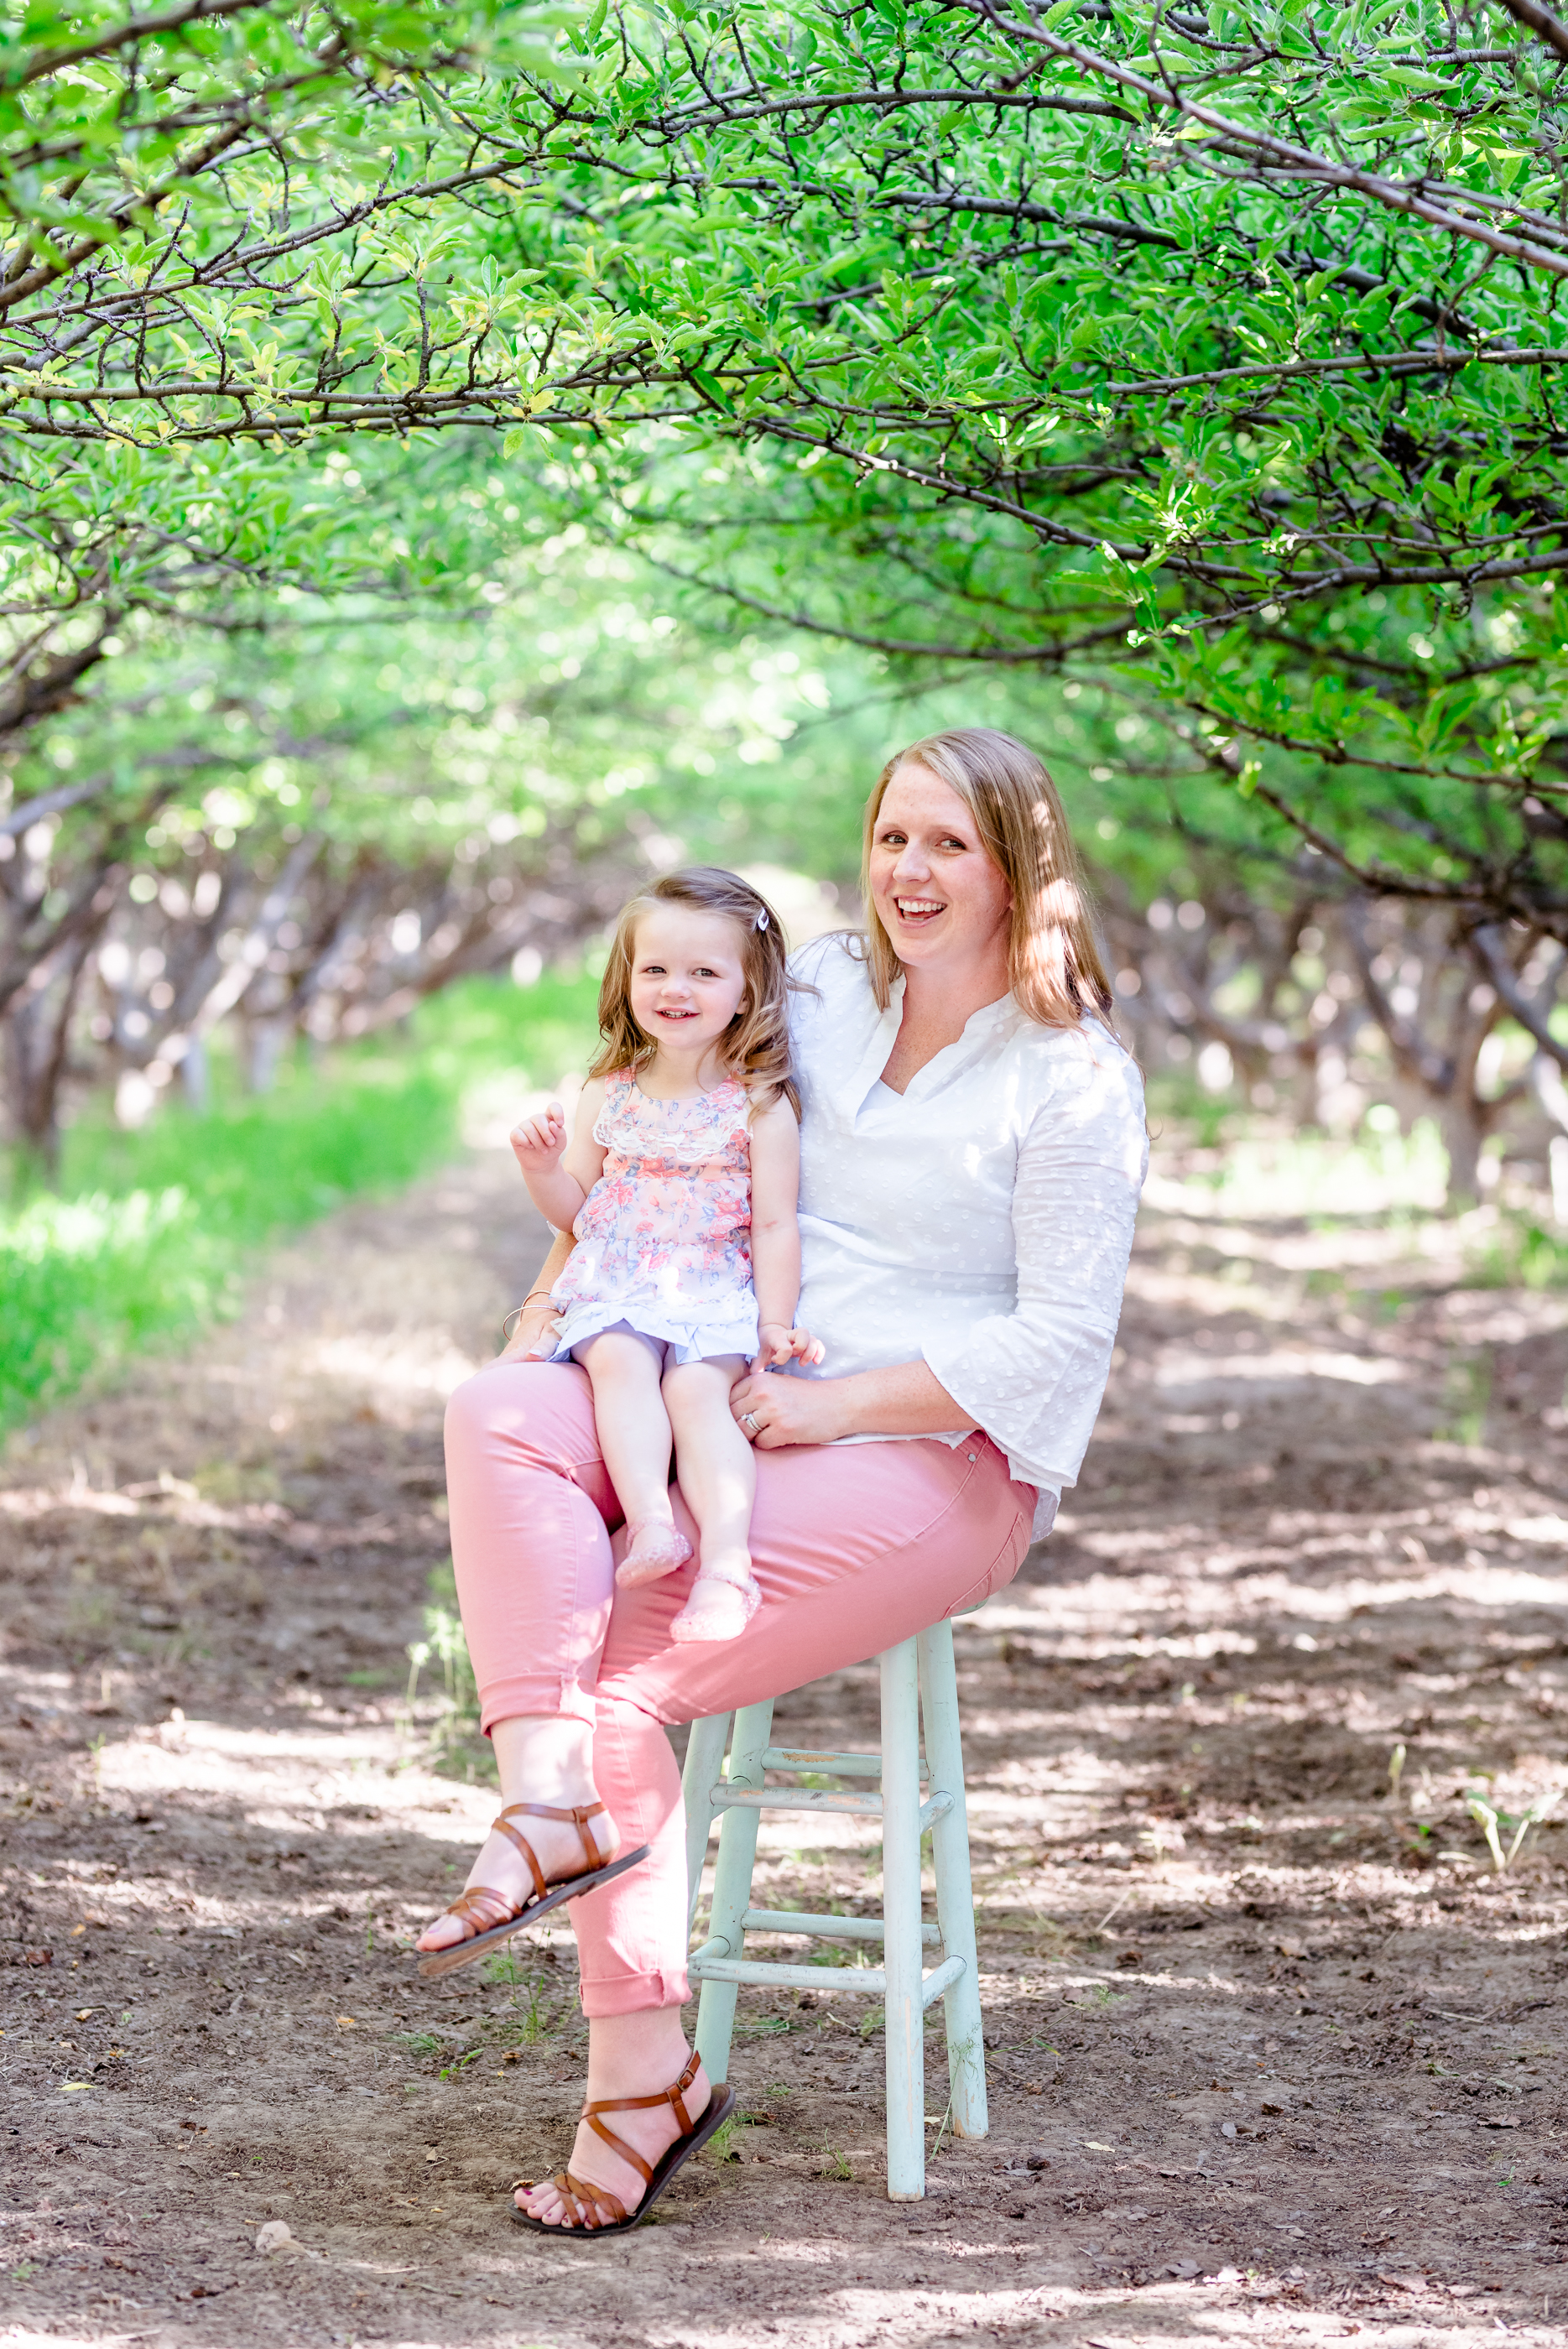 Mother and daughter. Family Session taken at the Provo Orchards in Provo, UT by Coley Cook Photography.